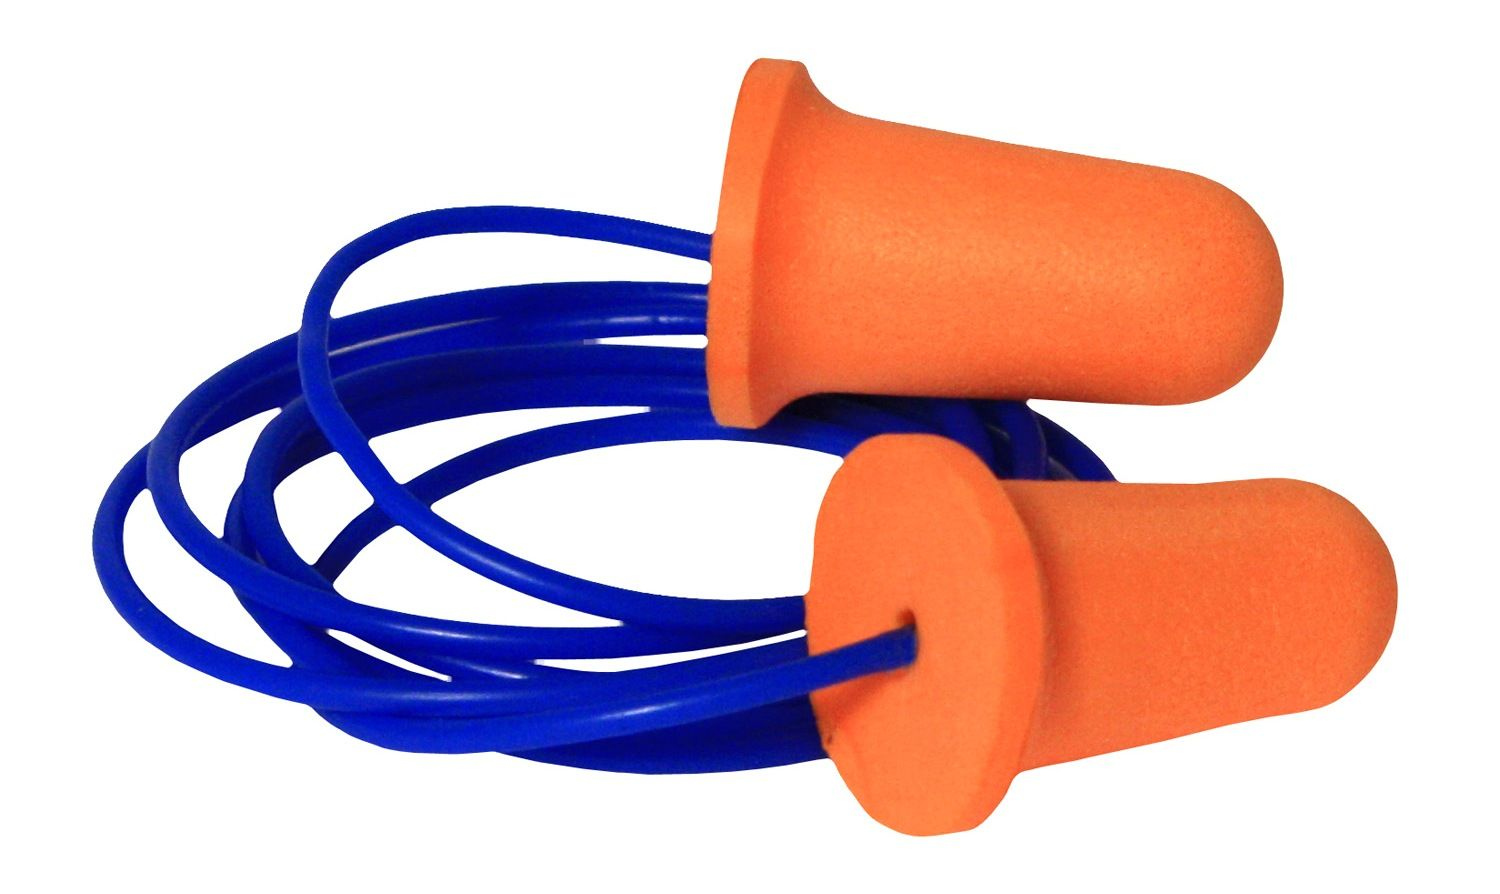 Buy online comfortable ear plugs for your ear protection